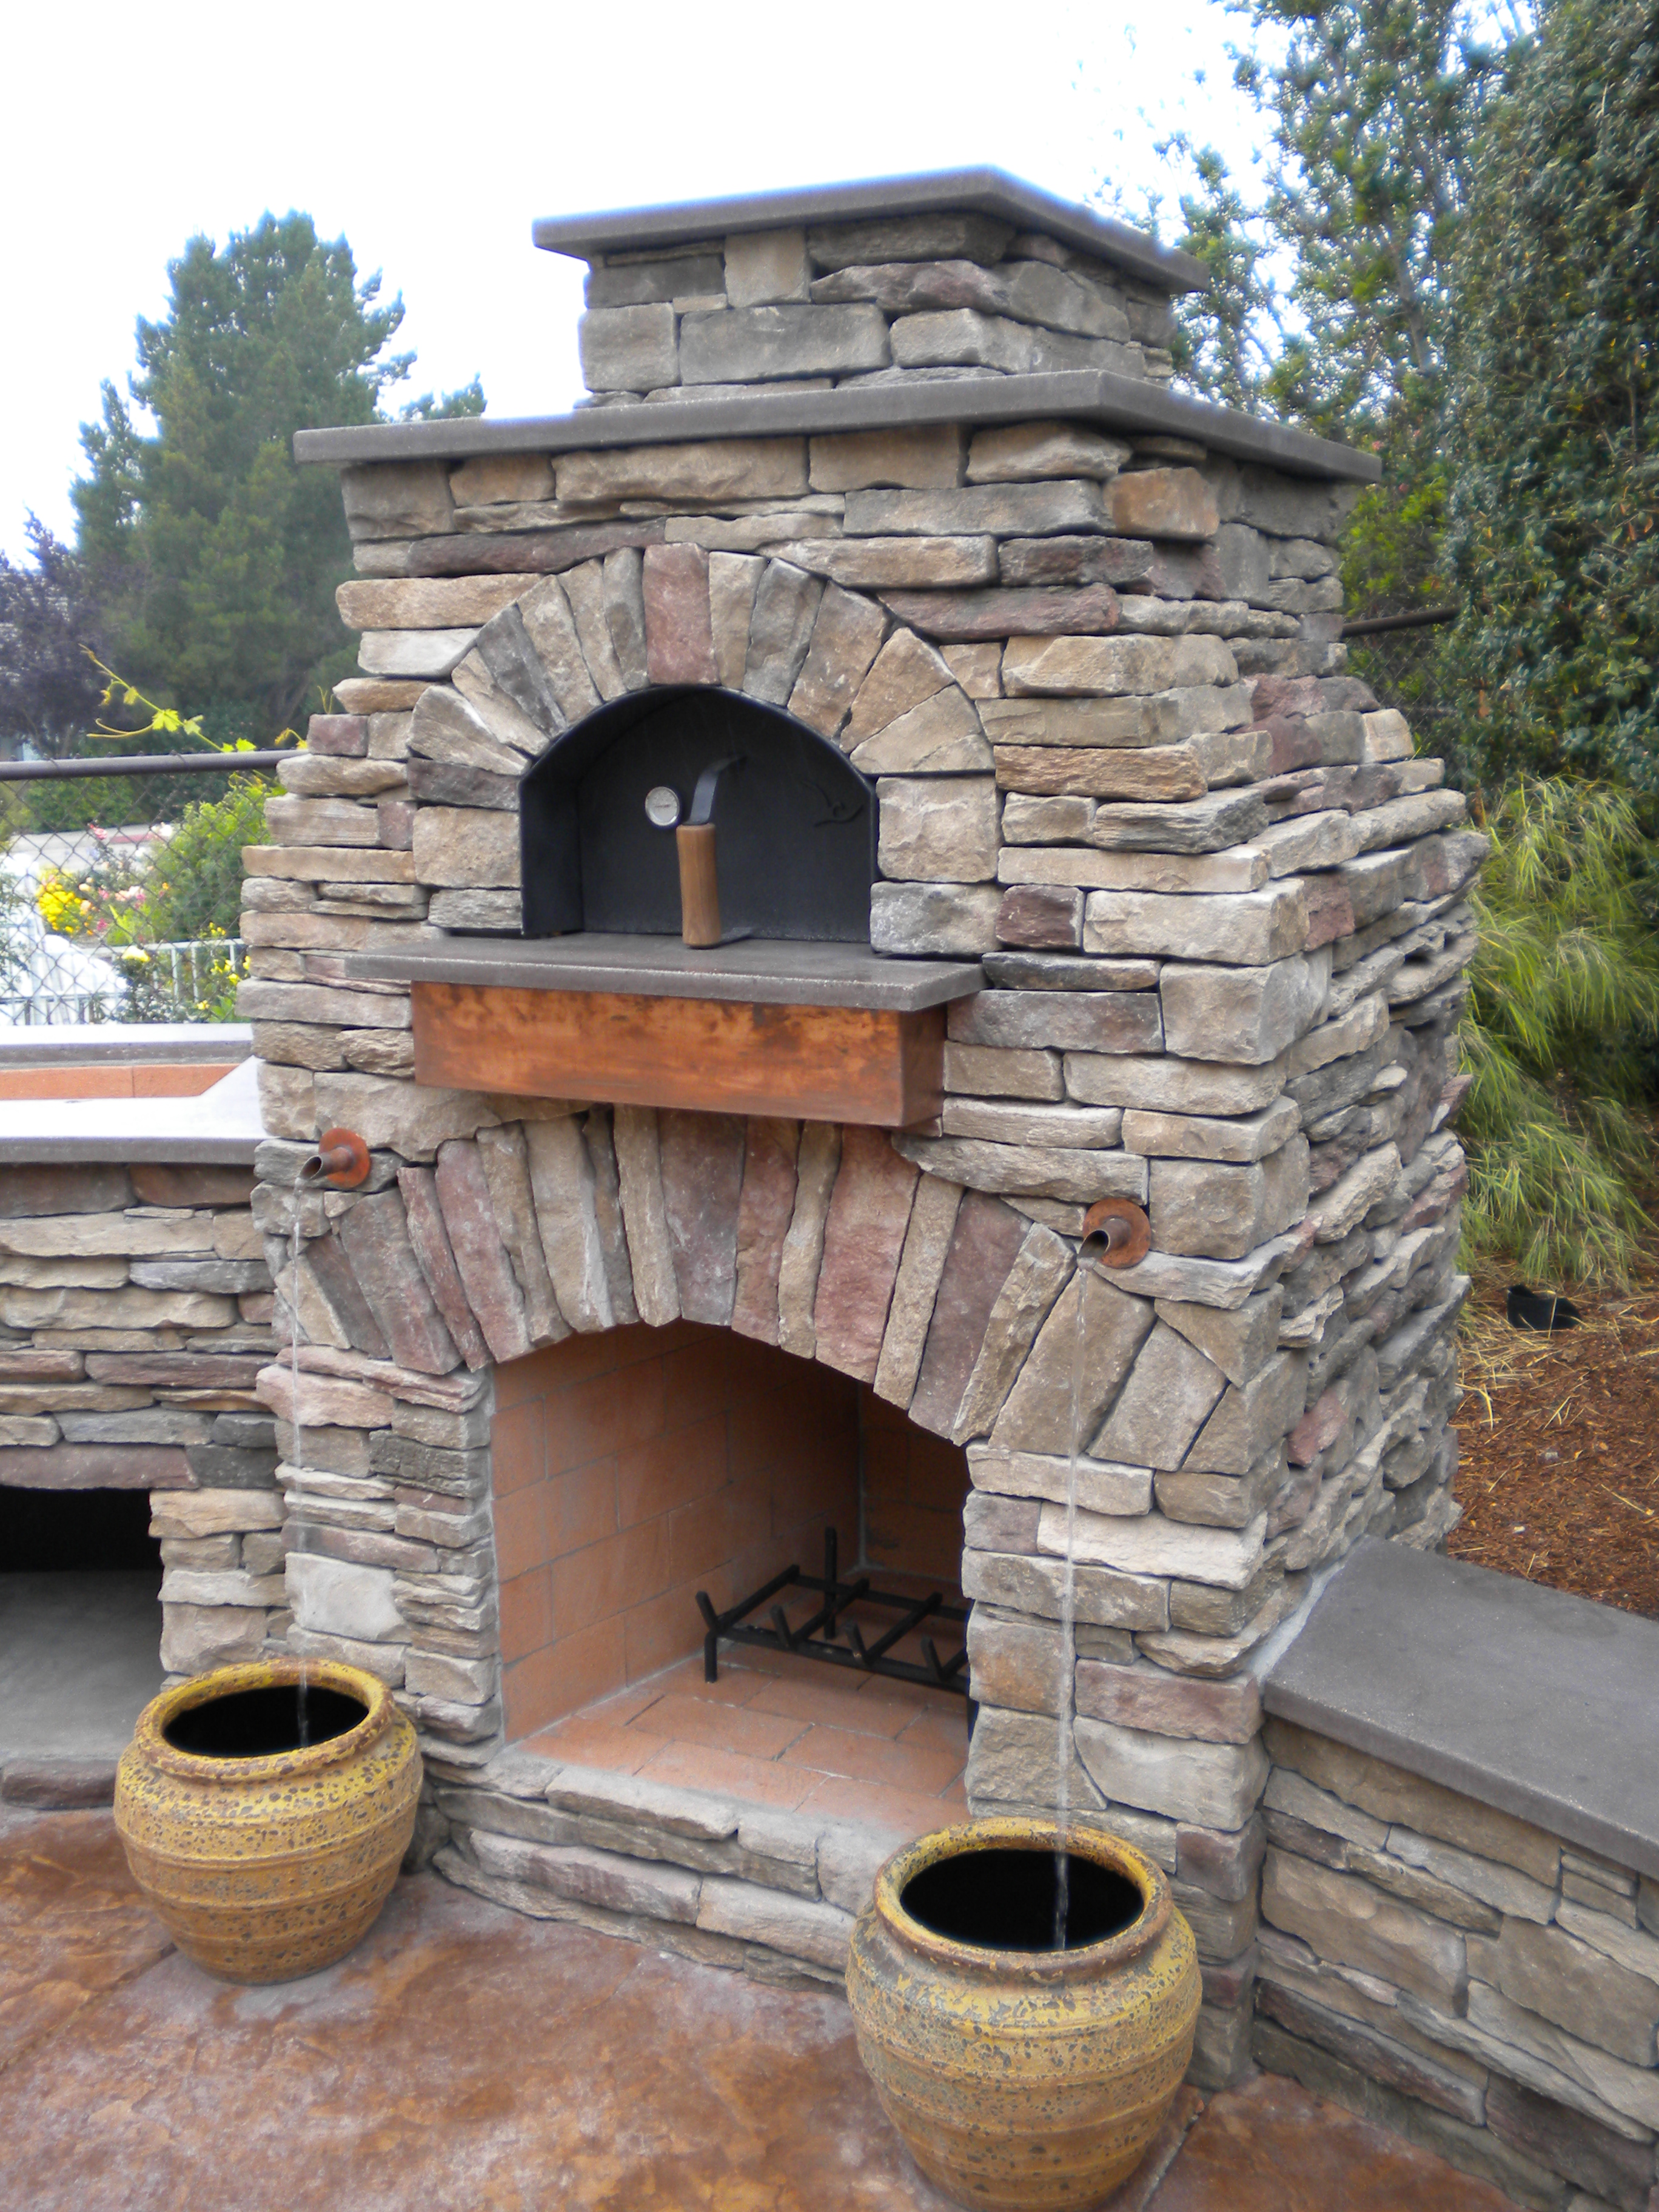 Custom Outdoor Kitchen LC Oven Designs Pizza Oven